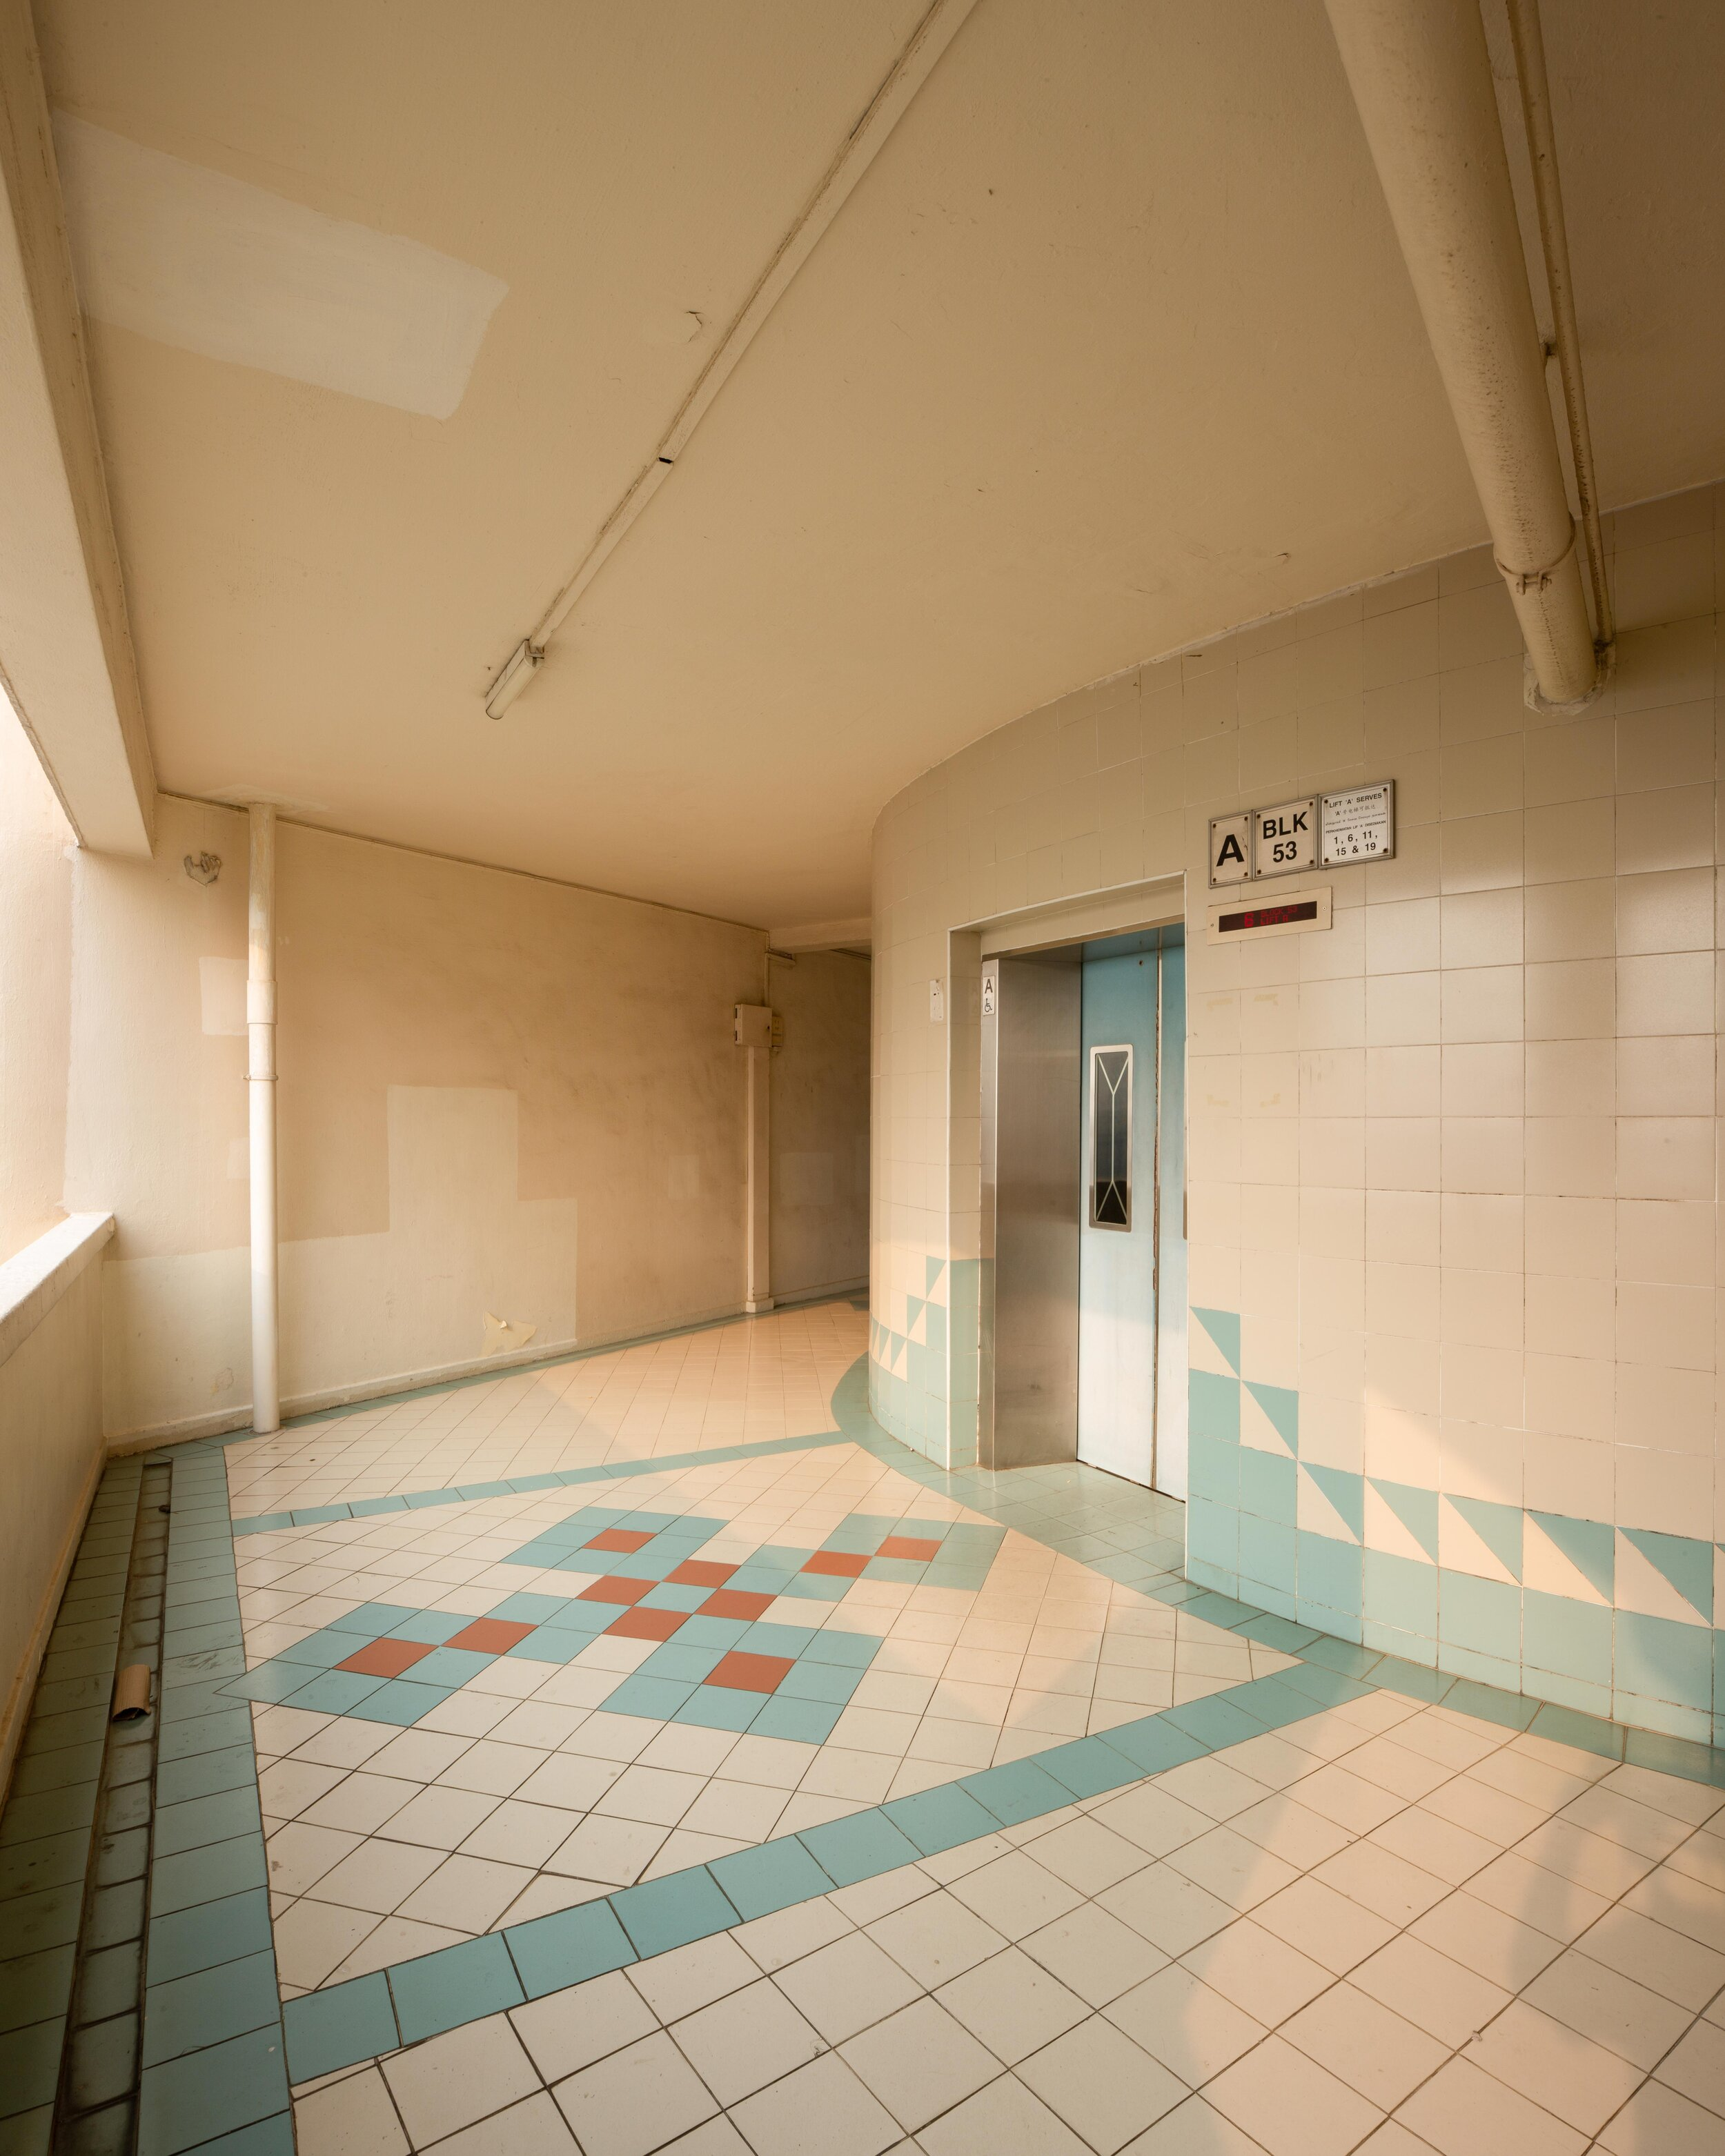 53 Lorong 5 Toa Payoh 190918 071, image by Andrew Campbell Nelson.jpg